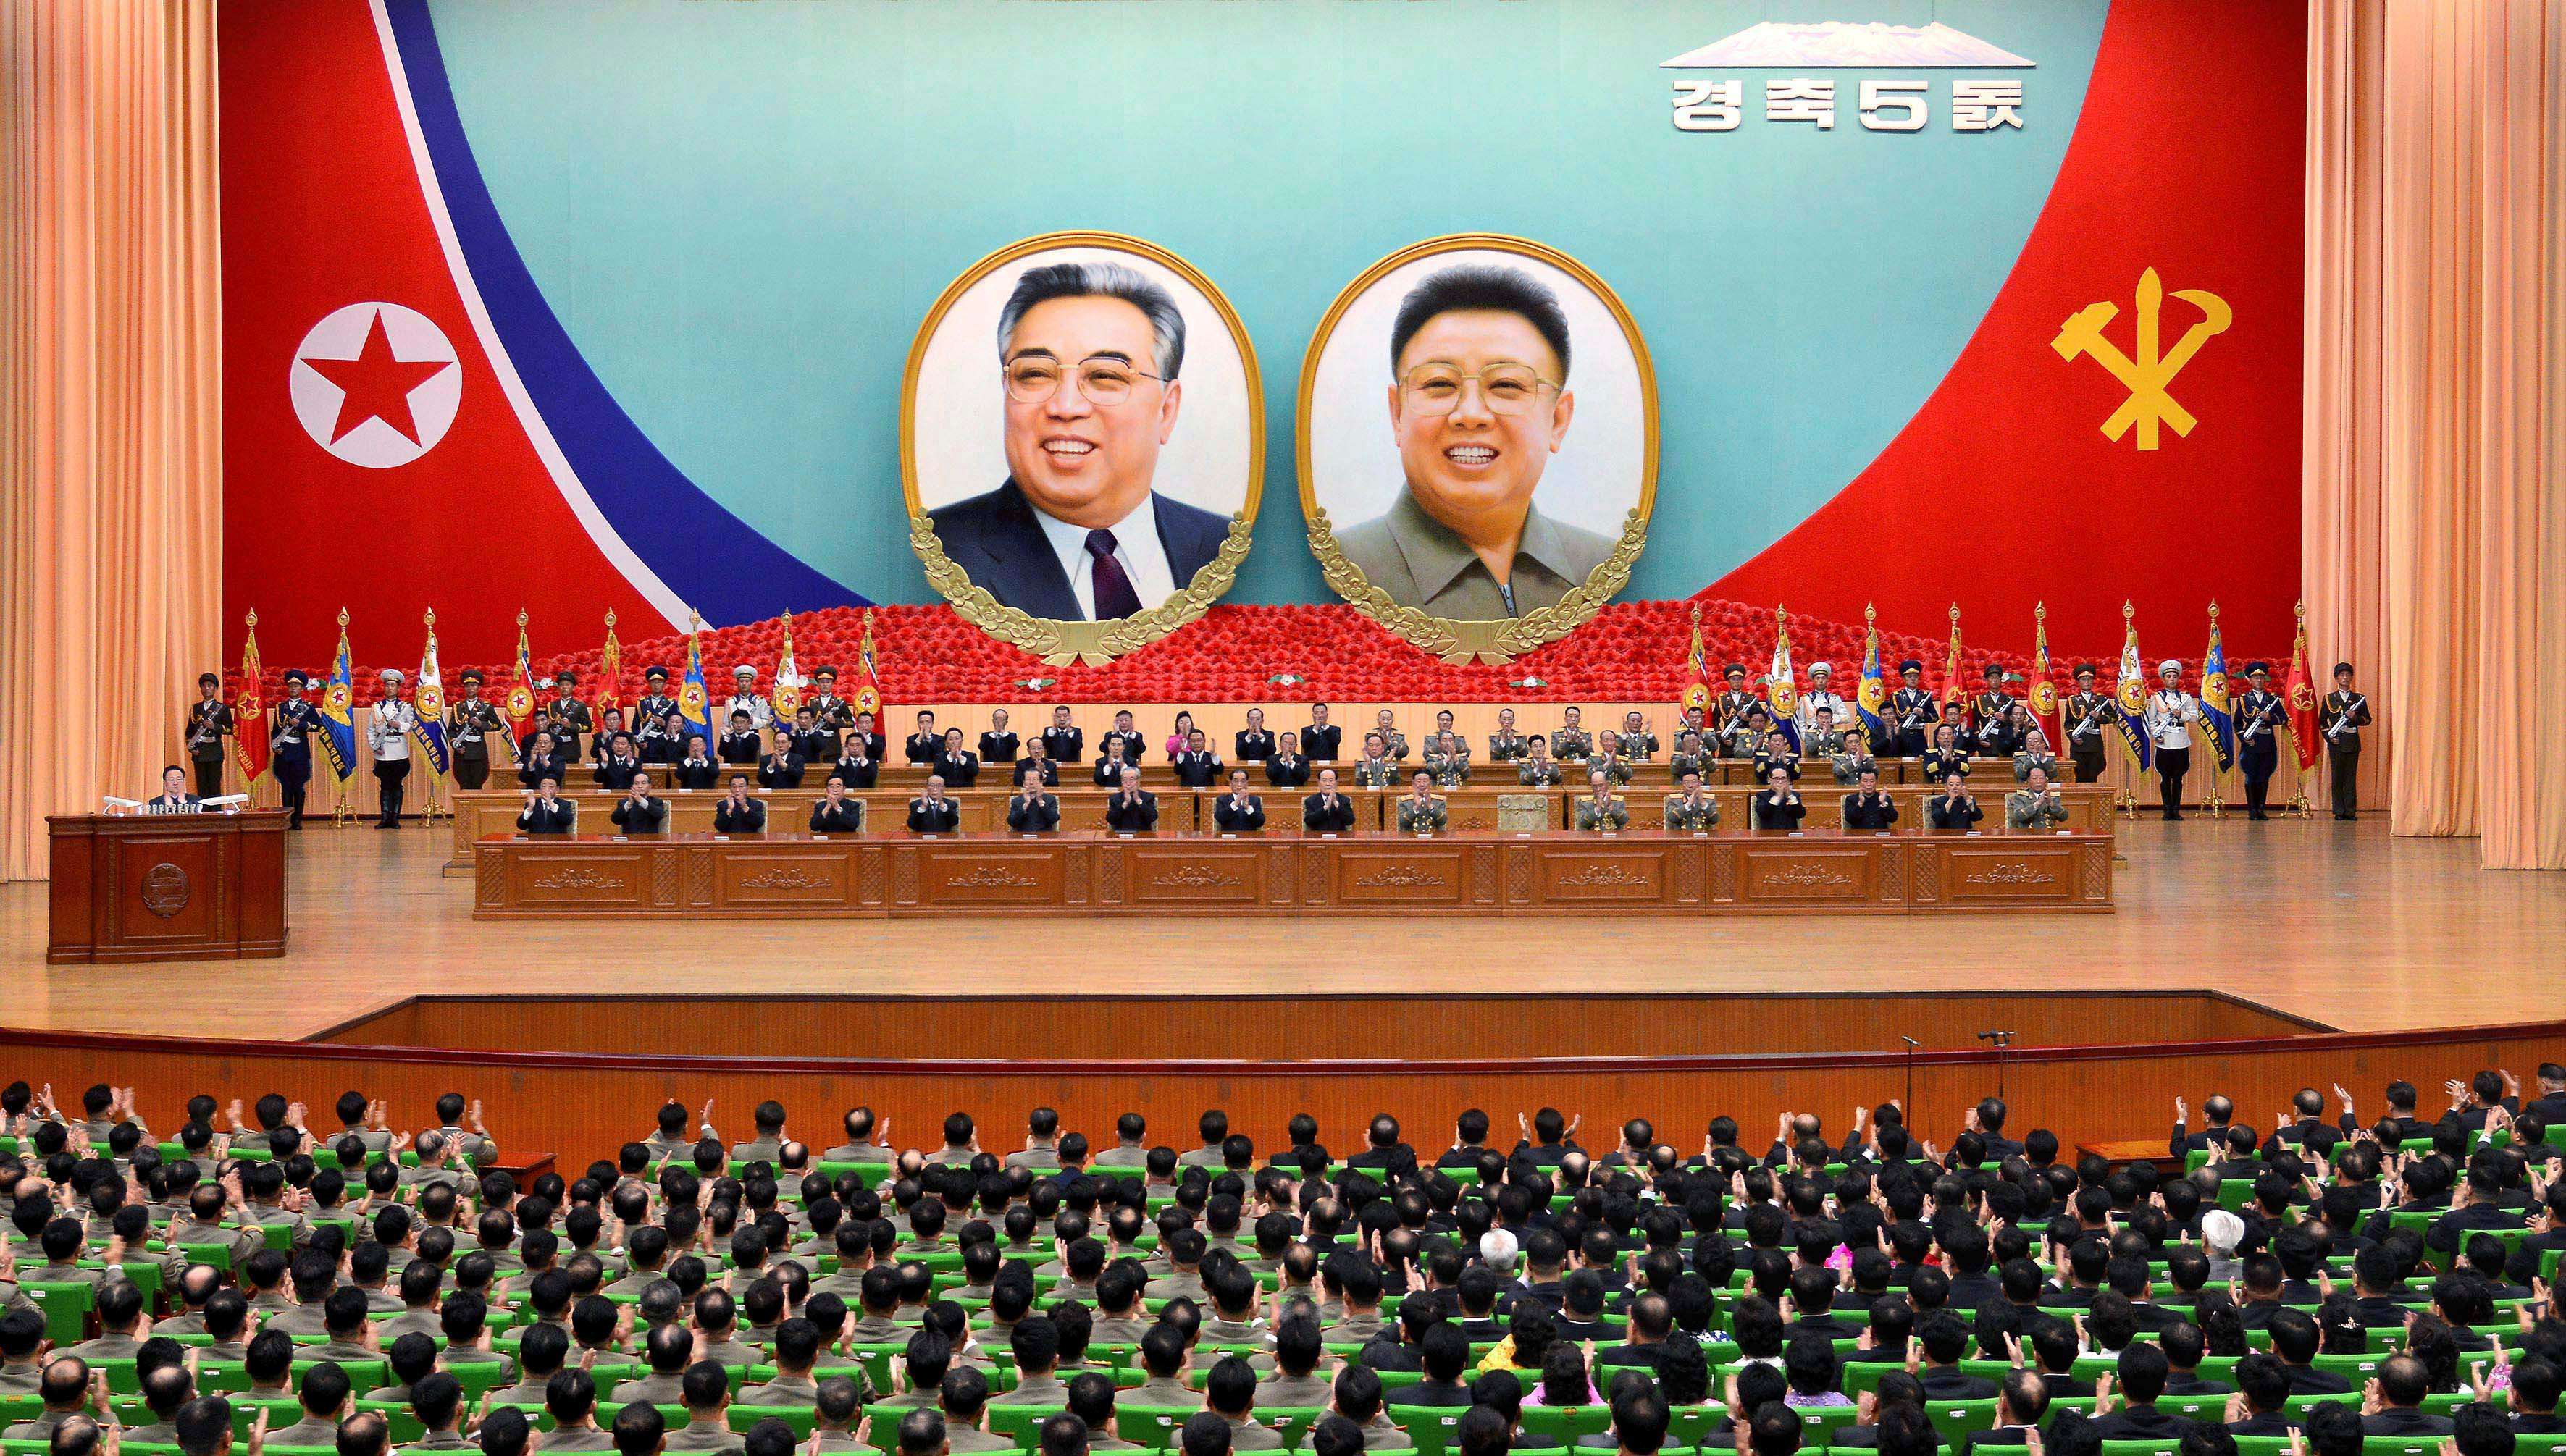 A general view of a national meeting took place to celebrate the 5th anniversary of leader Kim Jong Un's assumption of the top posts of the party and the state, in this undated photo released by North Korea's Korean Central News Agency (KCNA) in Pyongyang April 12, 2017.